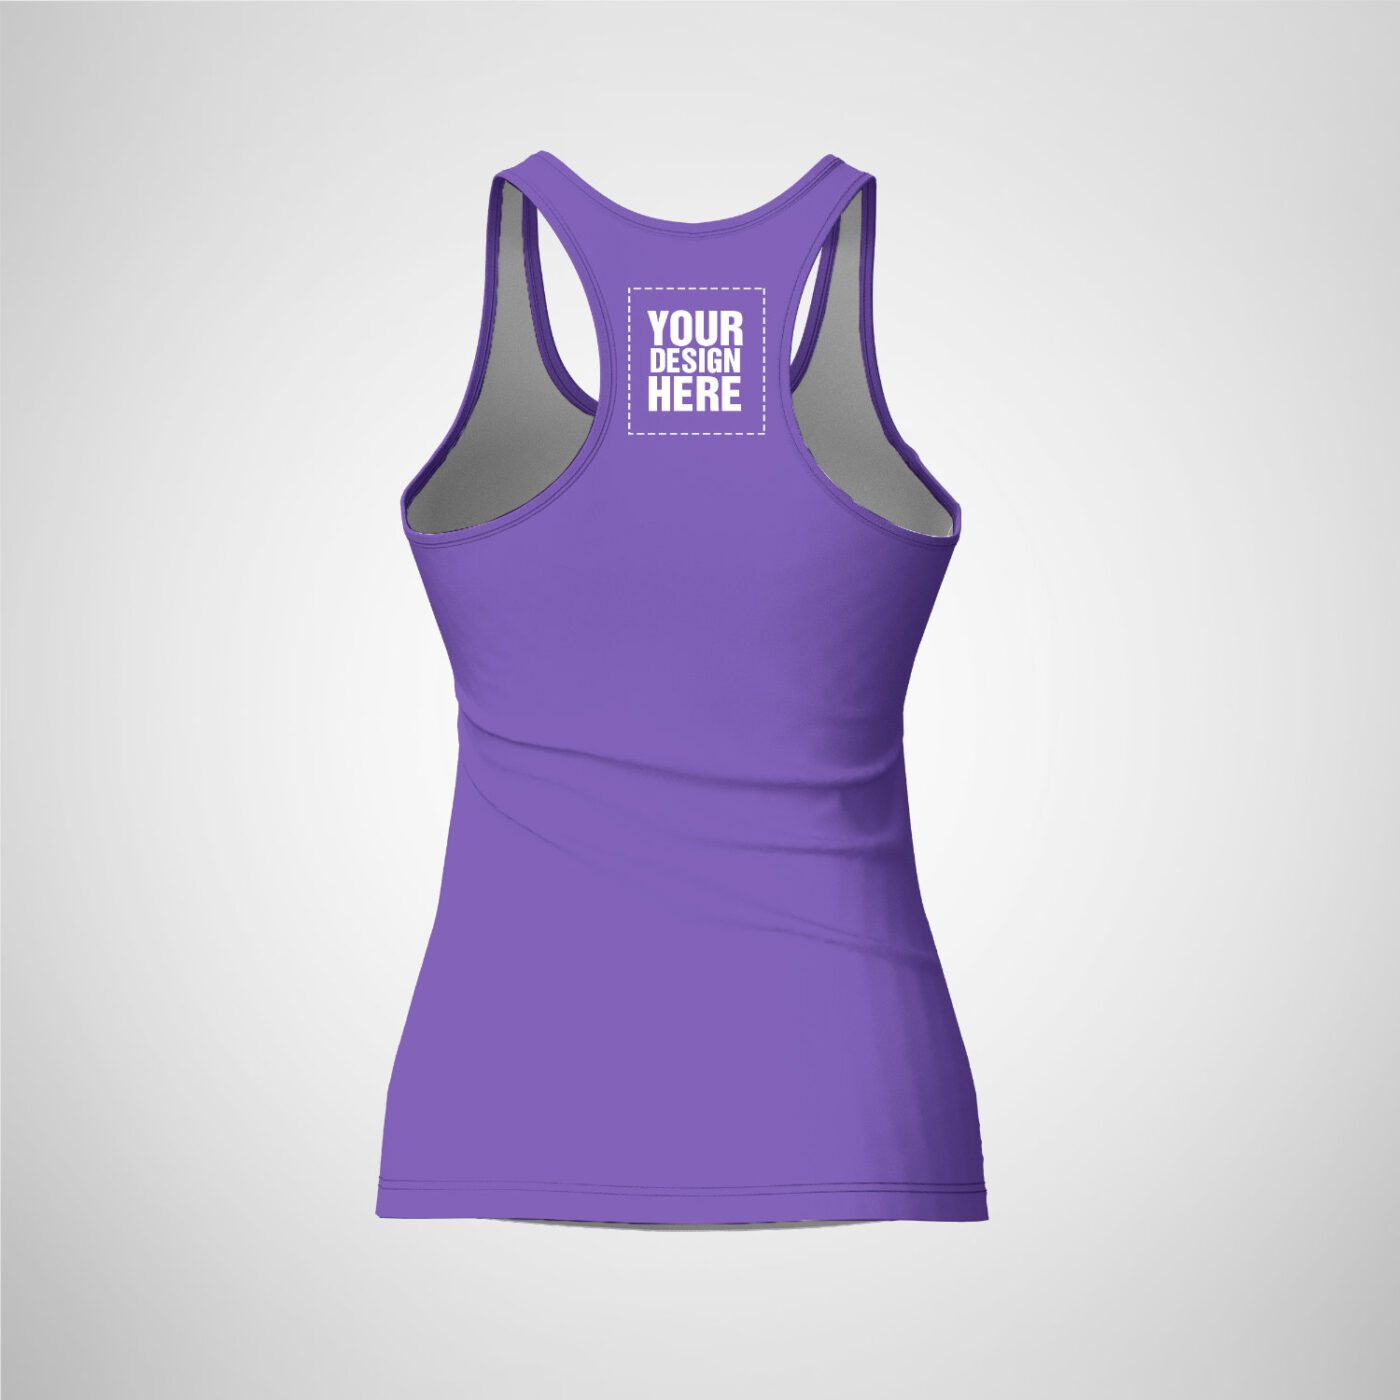 Womens Racerback - Medium Purple Color